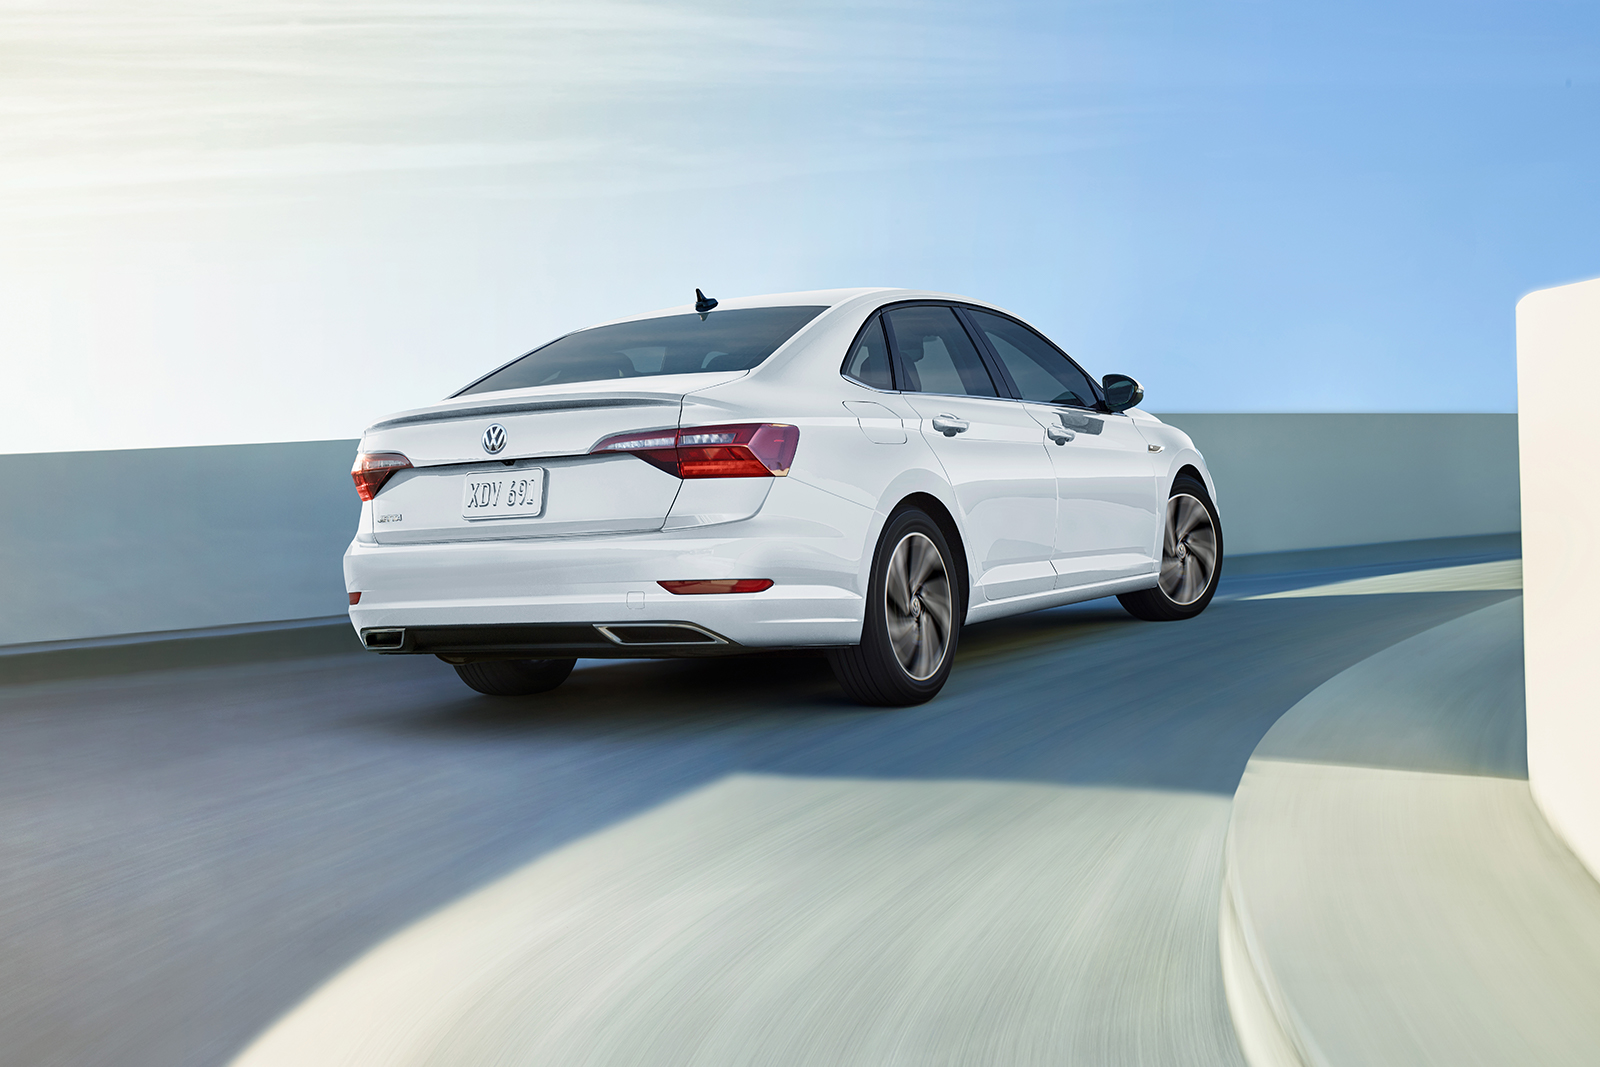 2020 Volkswagen Jetta near Dallas Fort-Worth Texas